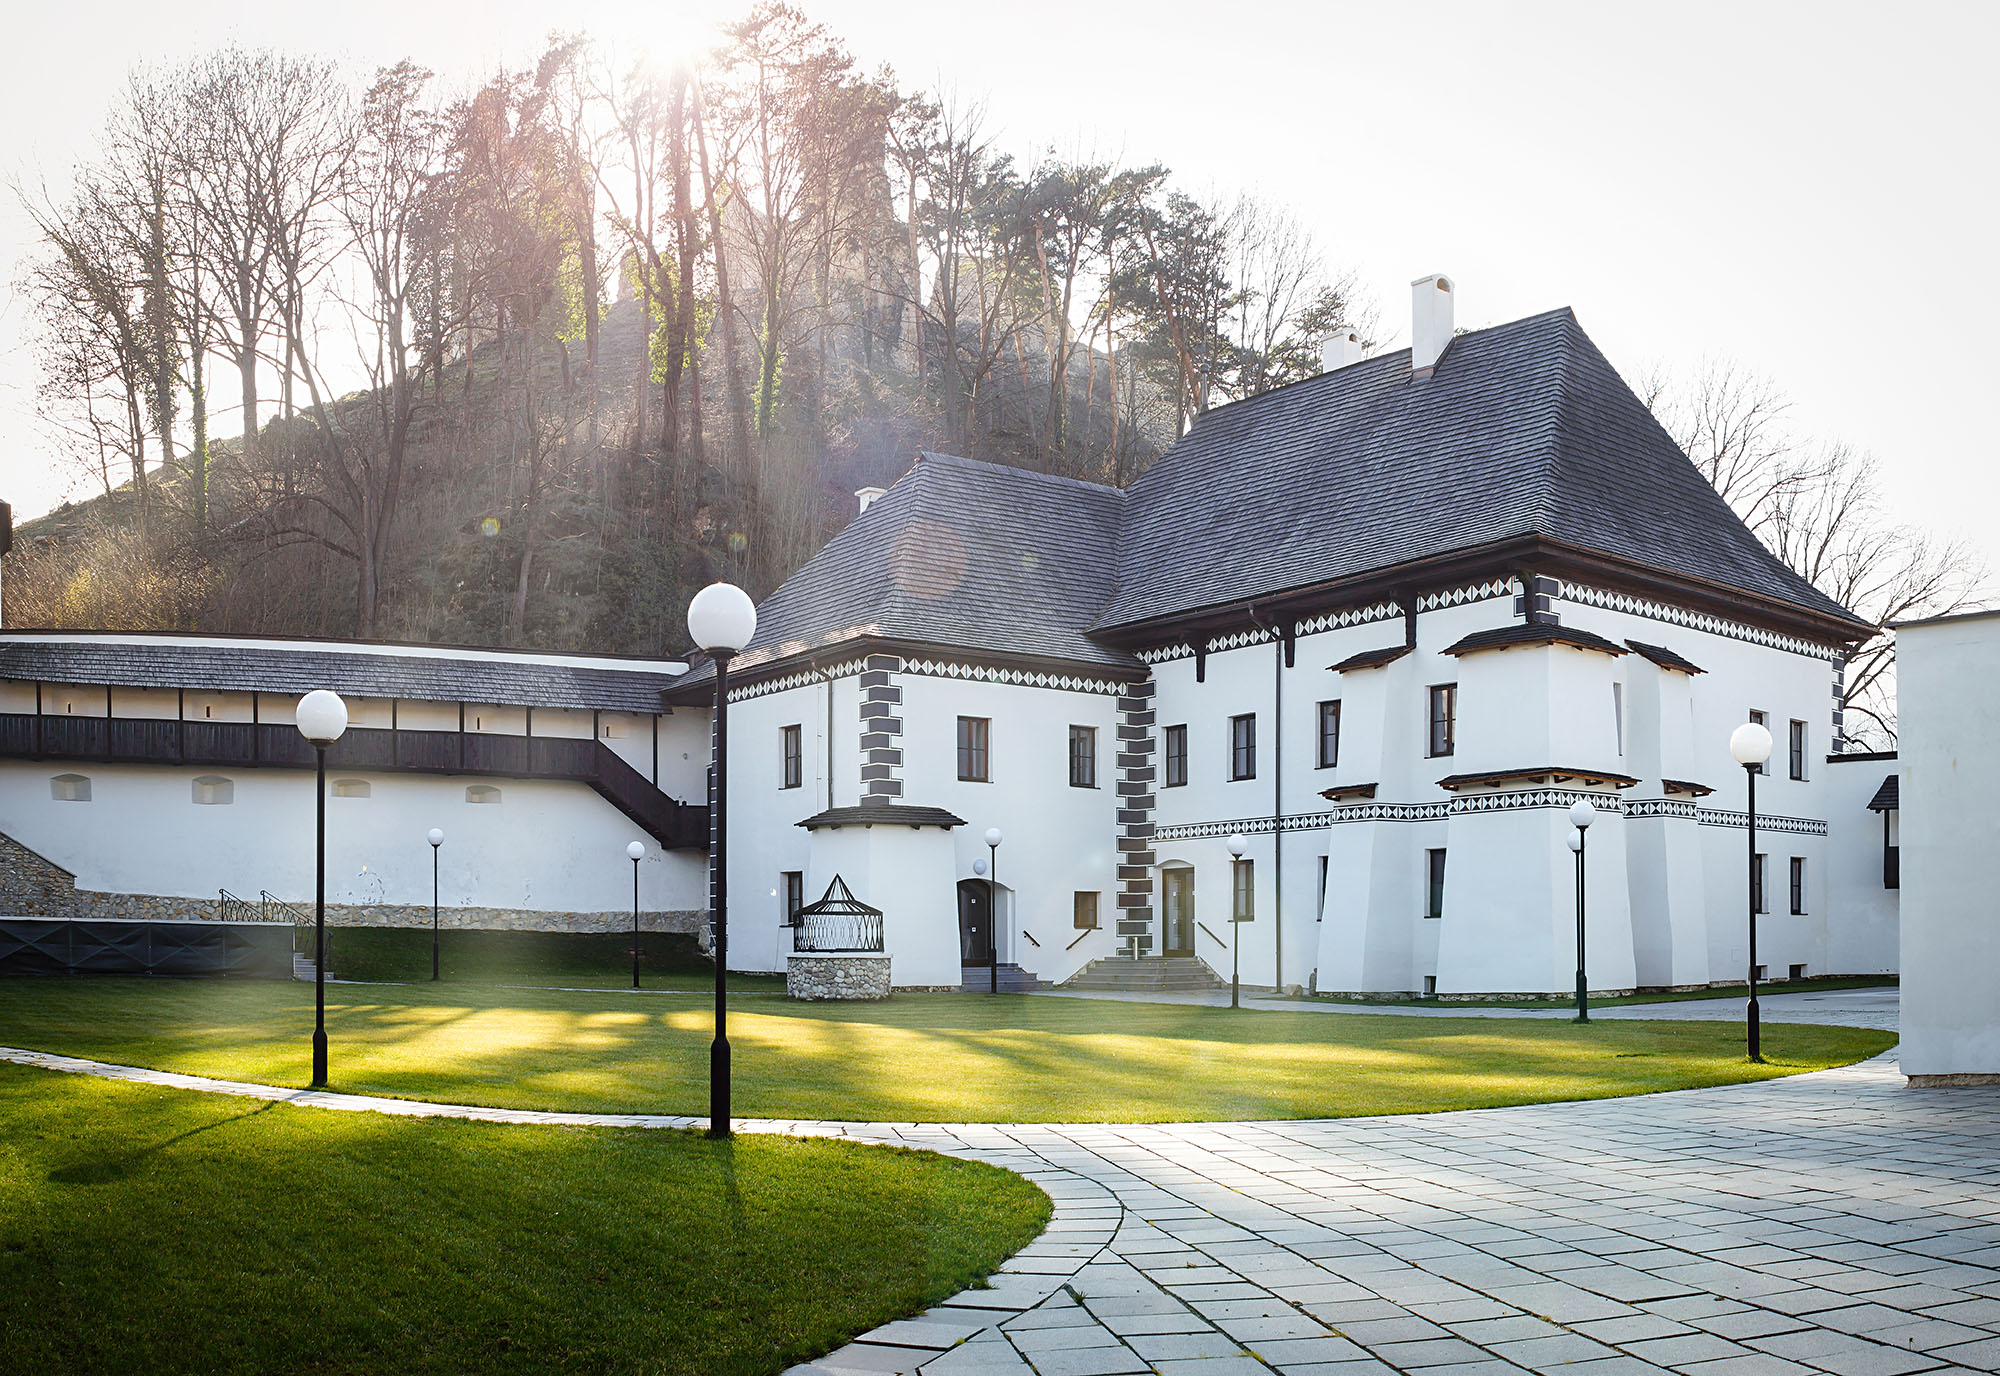 The Zichy's Mansion in Divín. Phot.: OSSKP Divín, Copyright: Government Office of the Slovak Republic